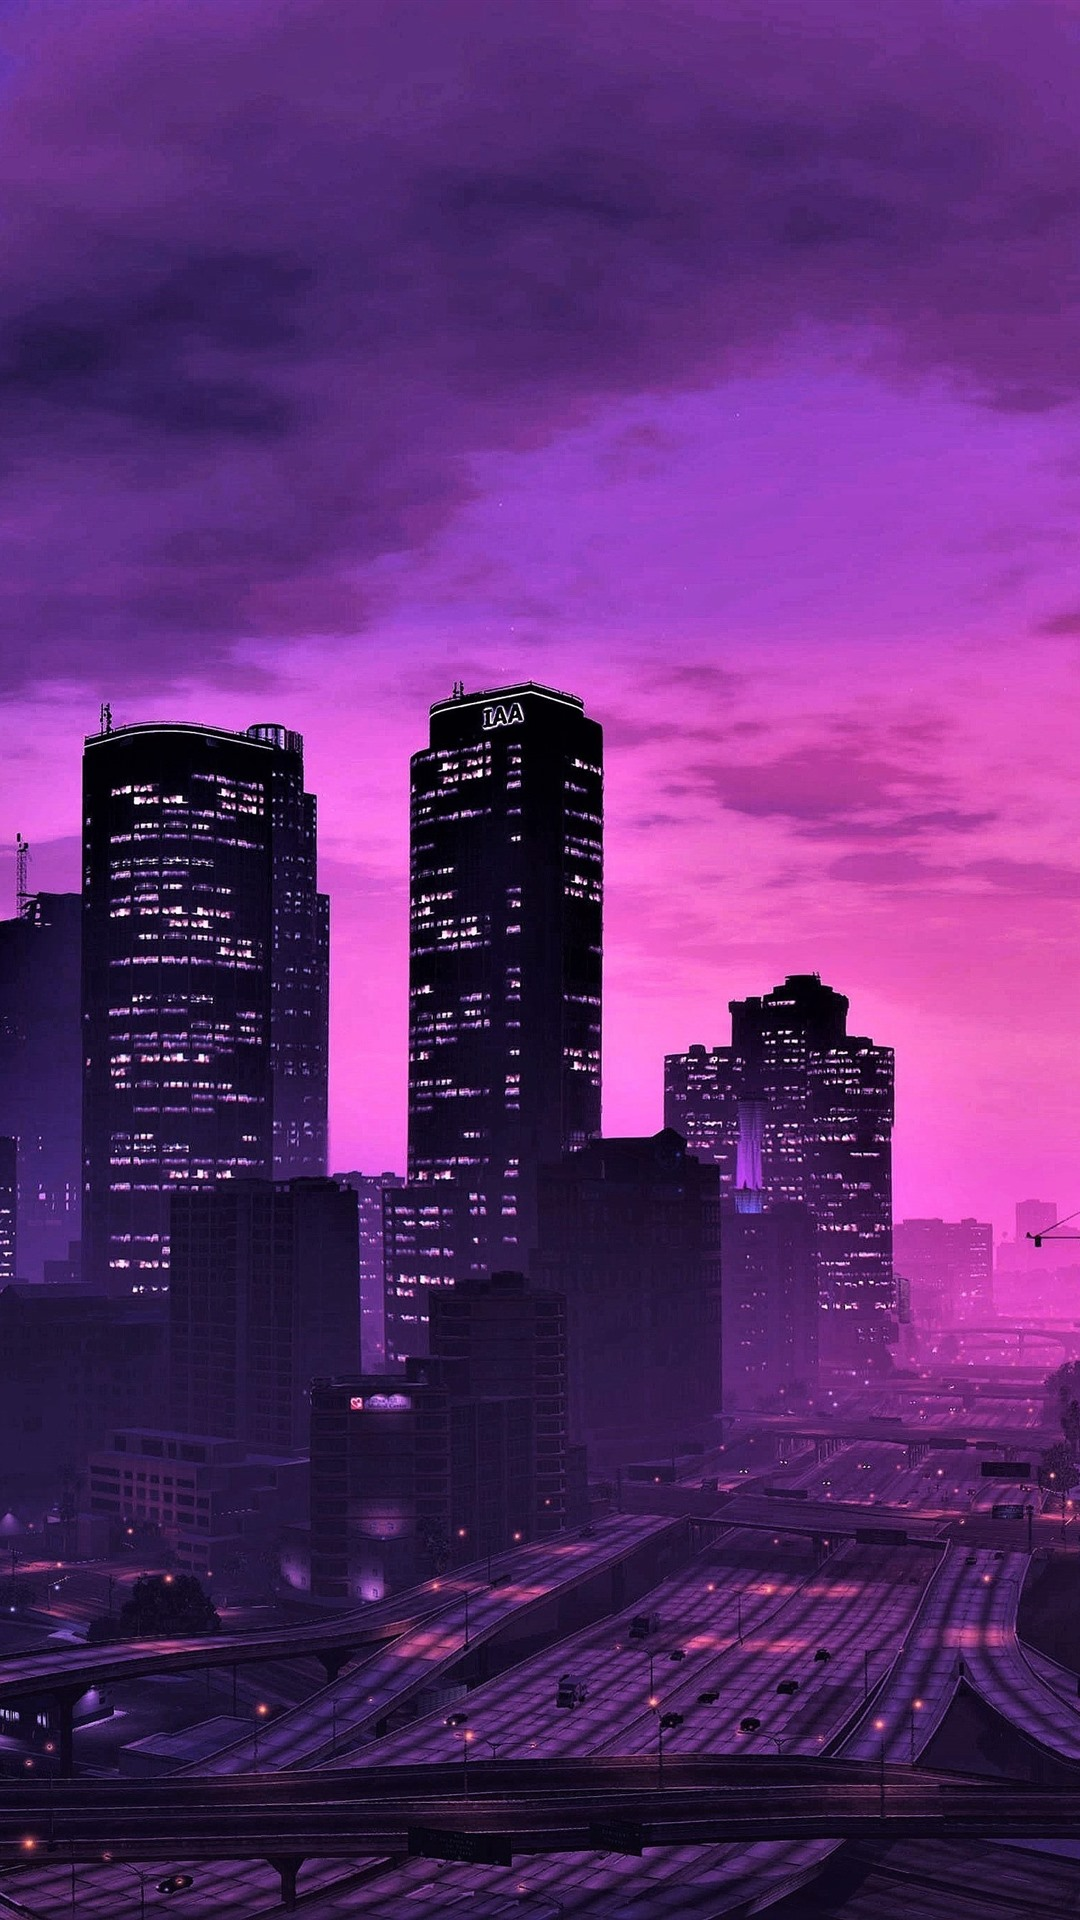 Wallpaper Gta 5 City At Night Purple Style Skyscrapers